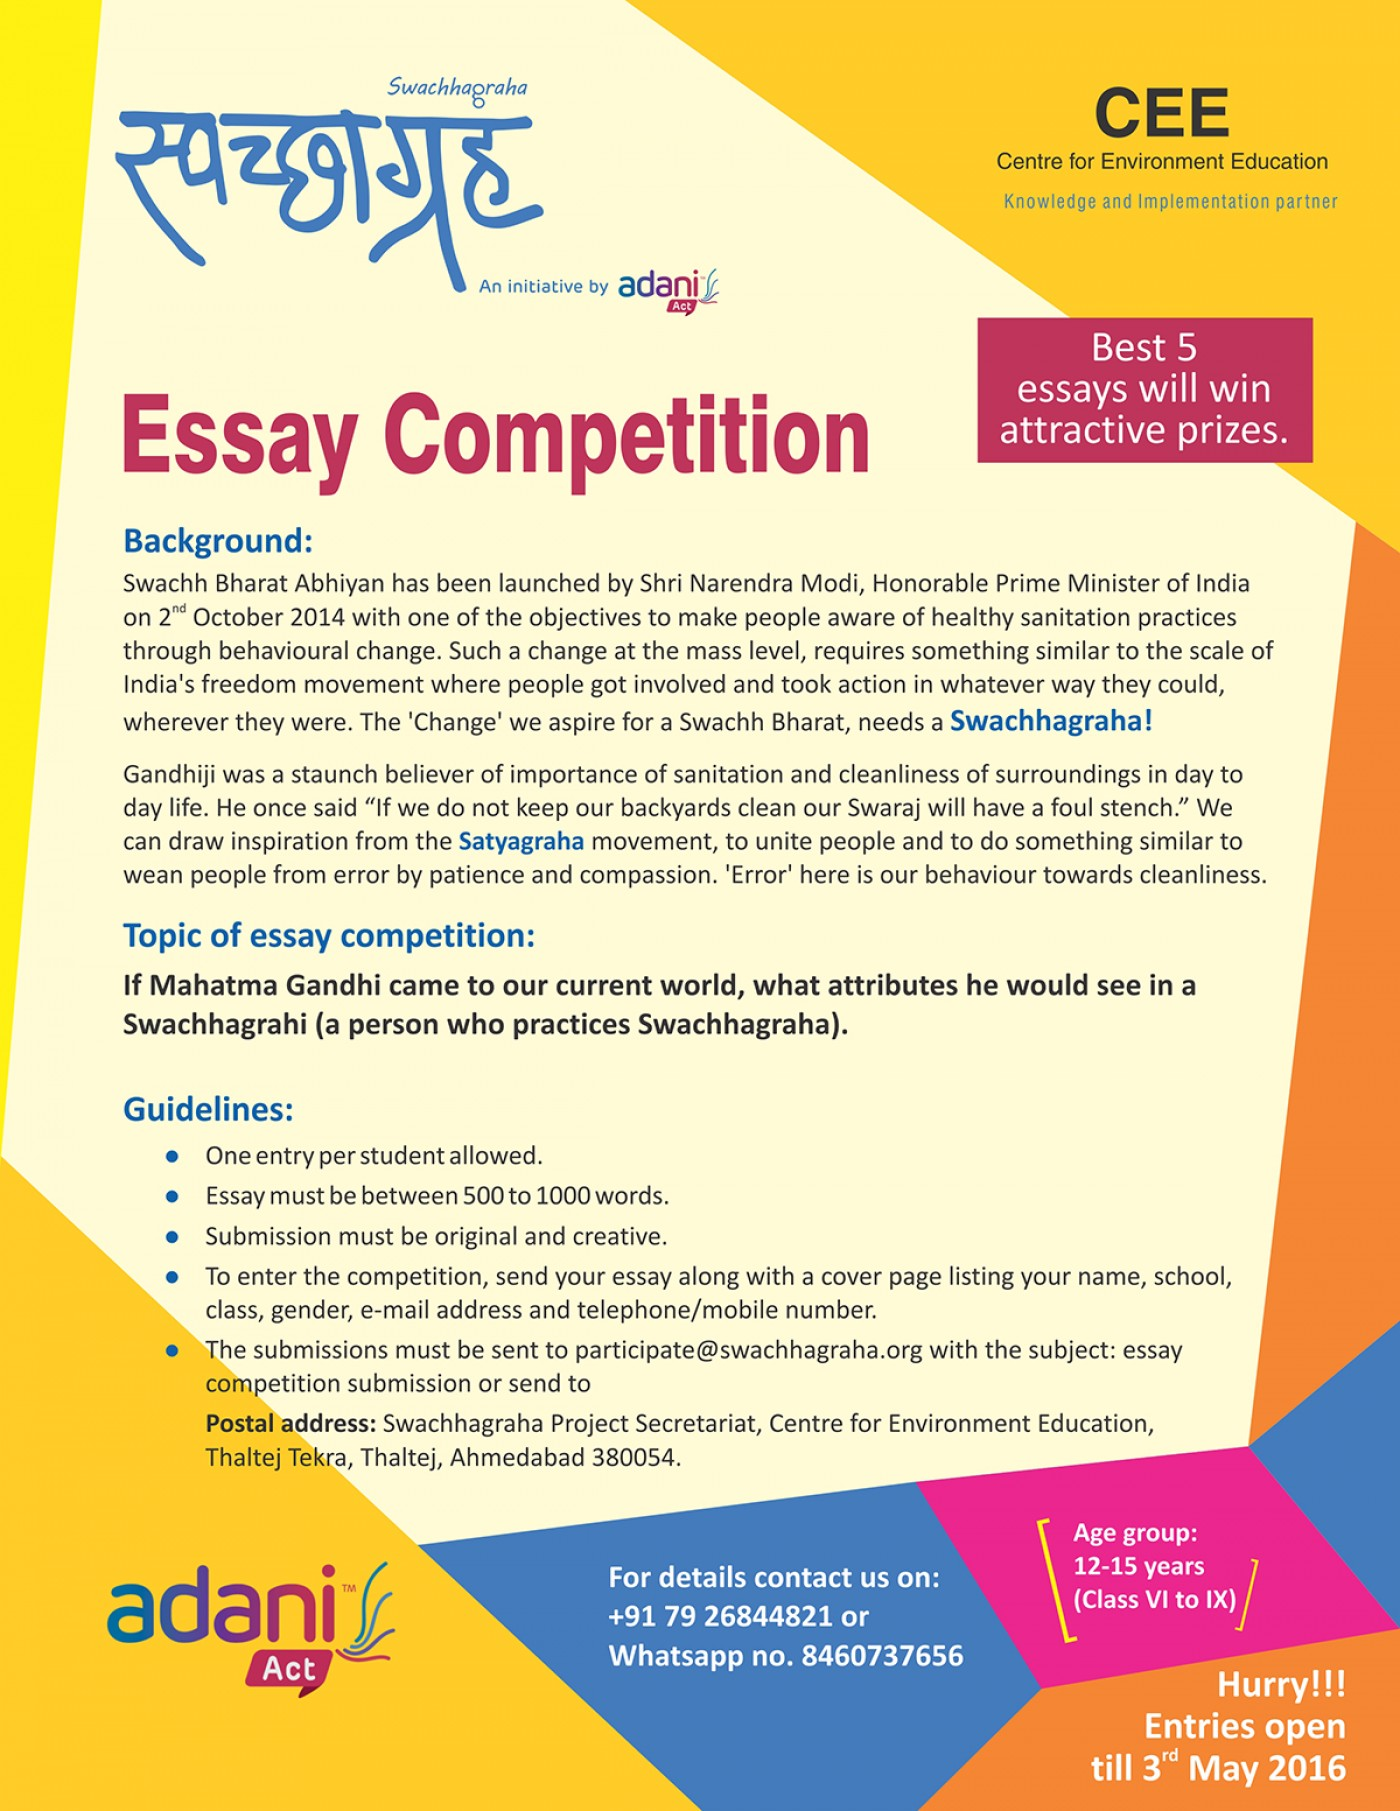 011 20180129171946essay20competition Essay About Cleanliness In School Phenomenal On Premises Toilets Writing 1400